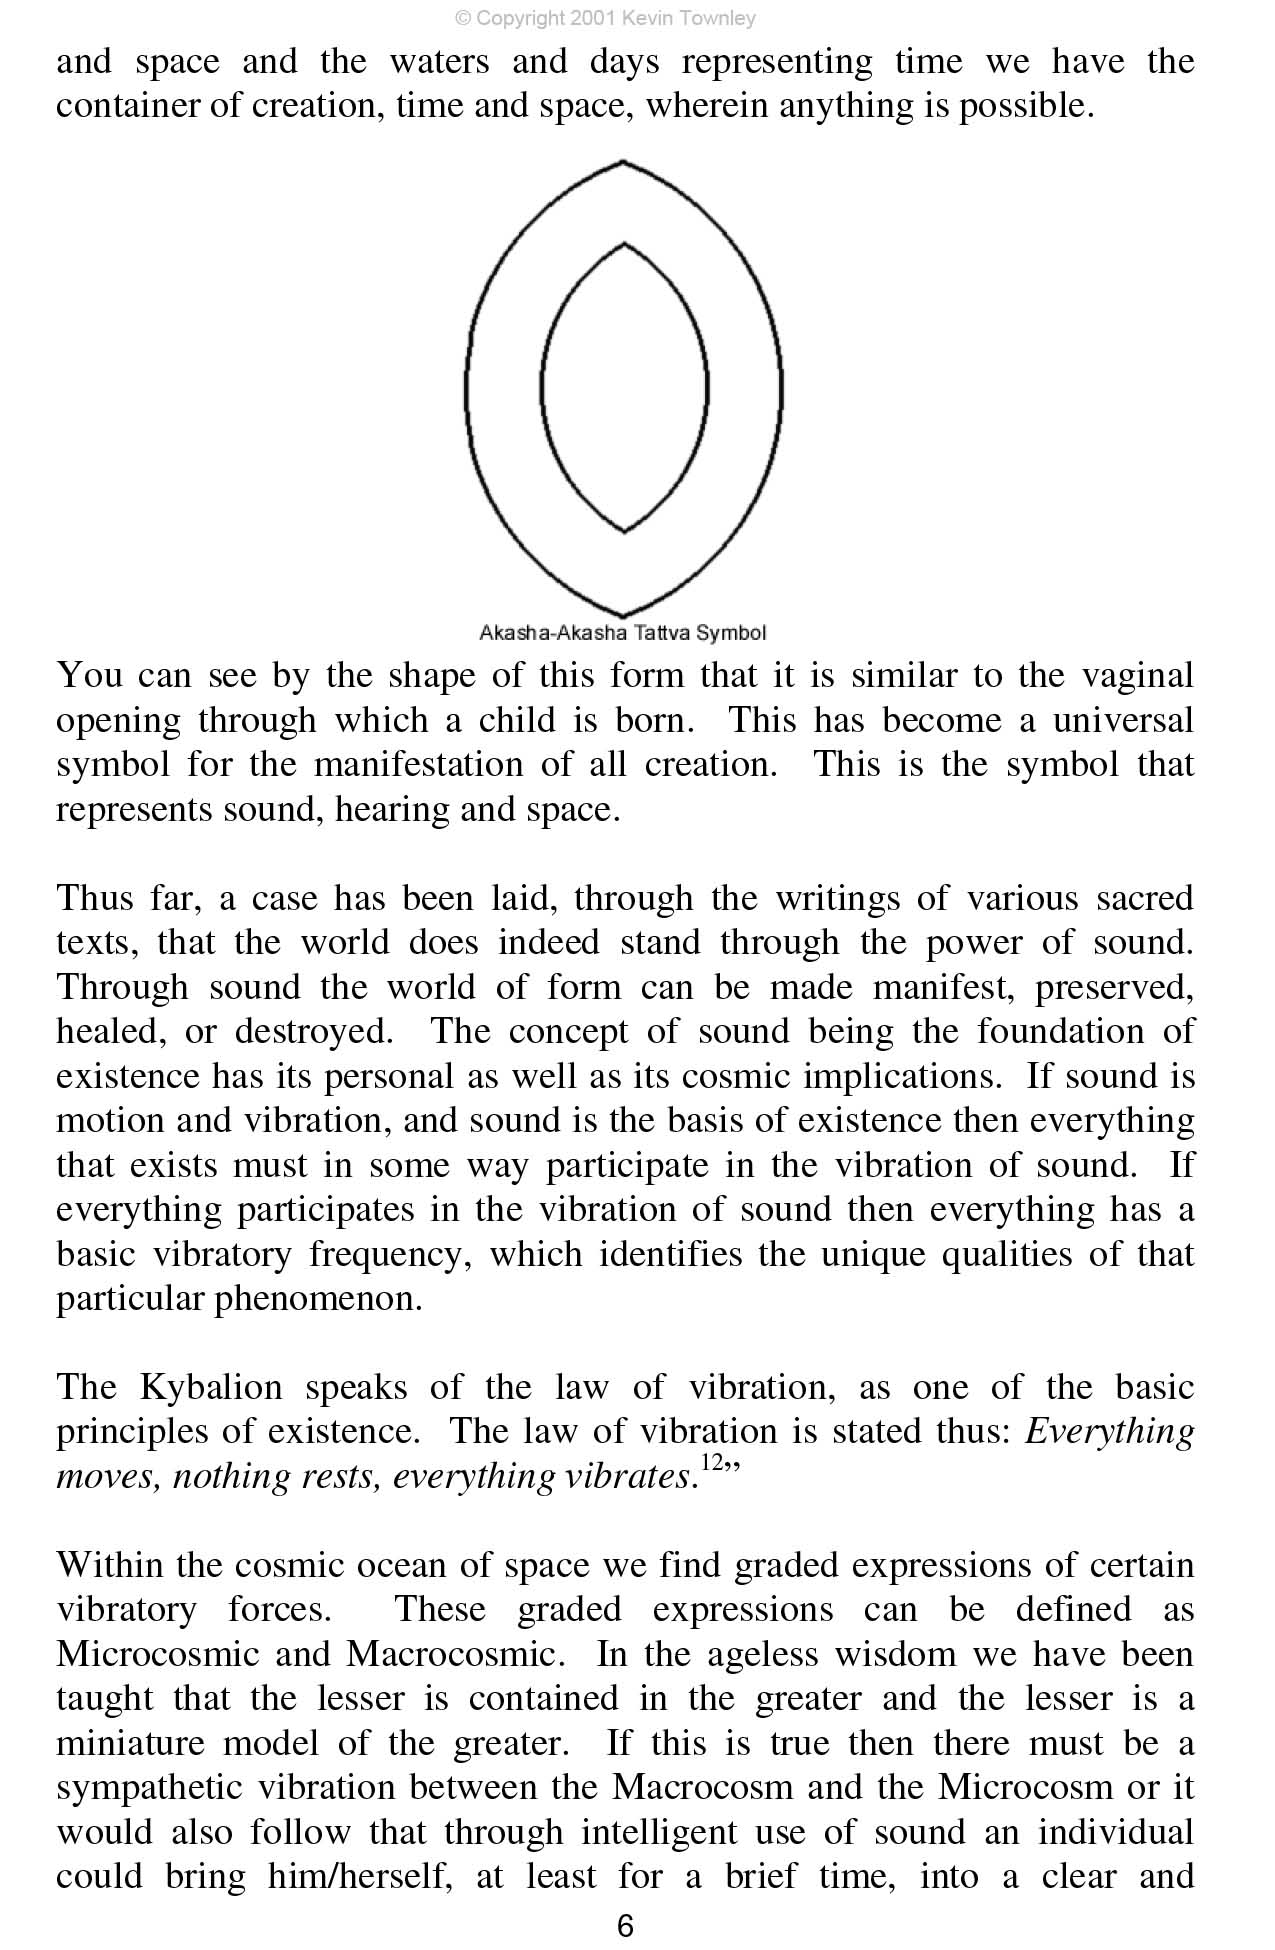 Healing with Sound and the Vibratory Attonement Part 1 p.6